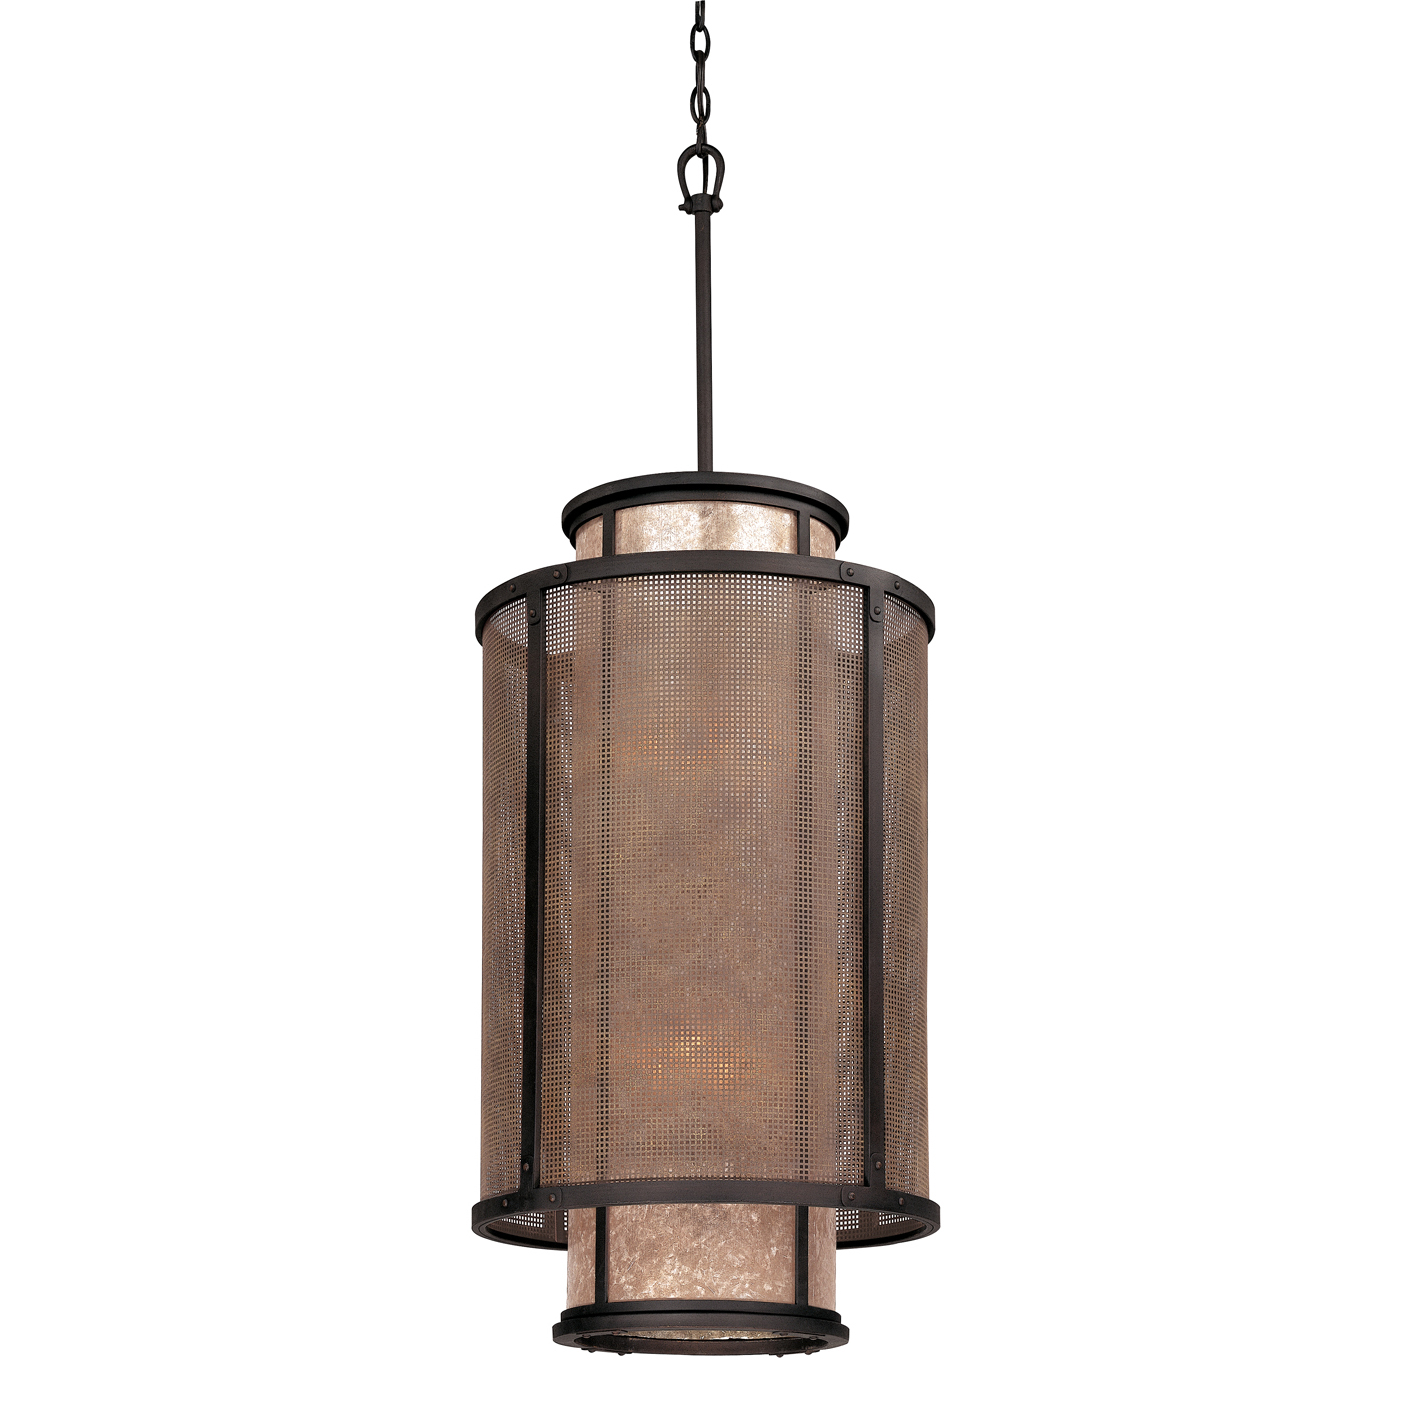 copper mountain pendant by troy lighting f3103. Black Bedroom Furniture Sets. Home Design Ideas